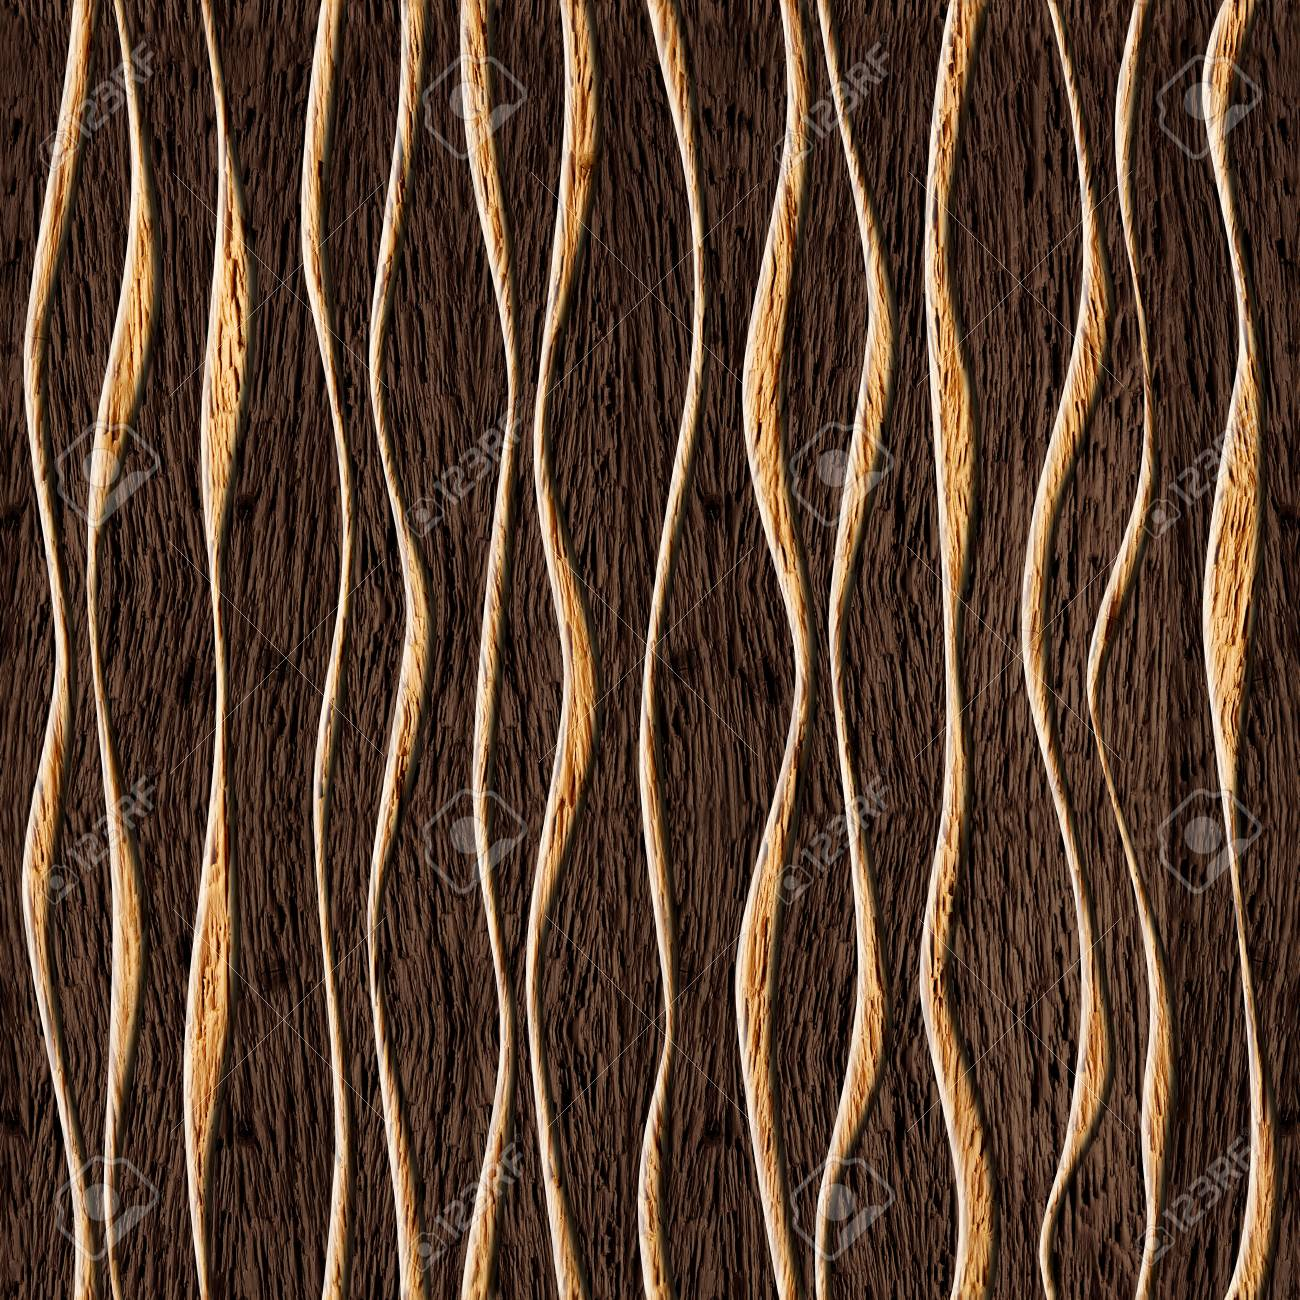 Seamless abstract wooden pattern, waves - 34316675